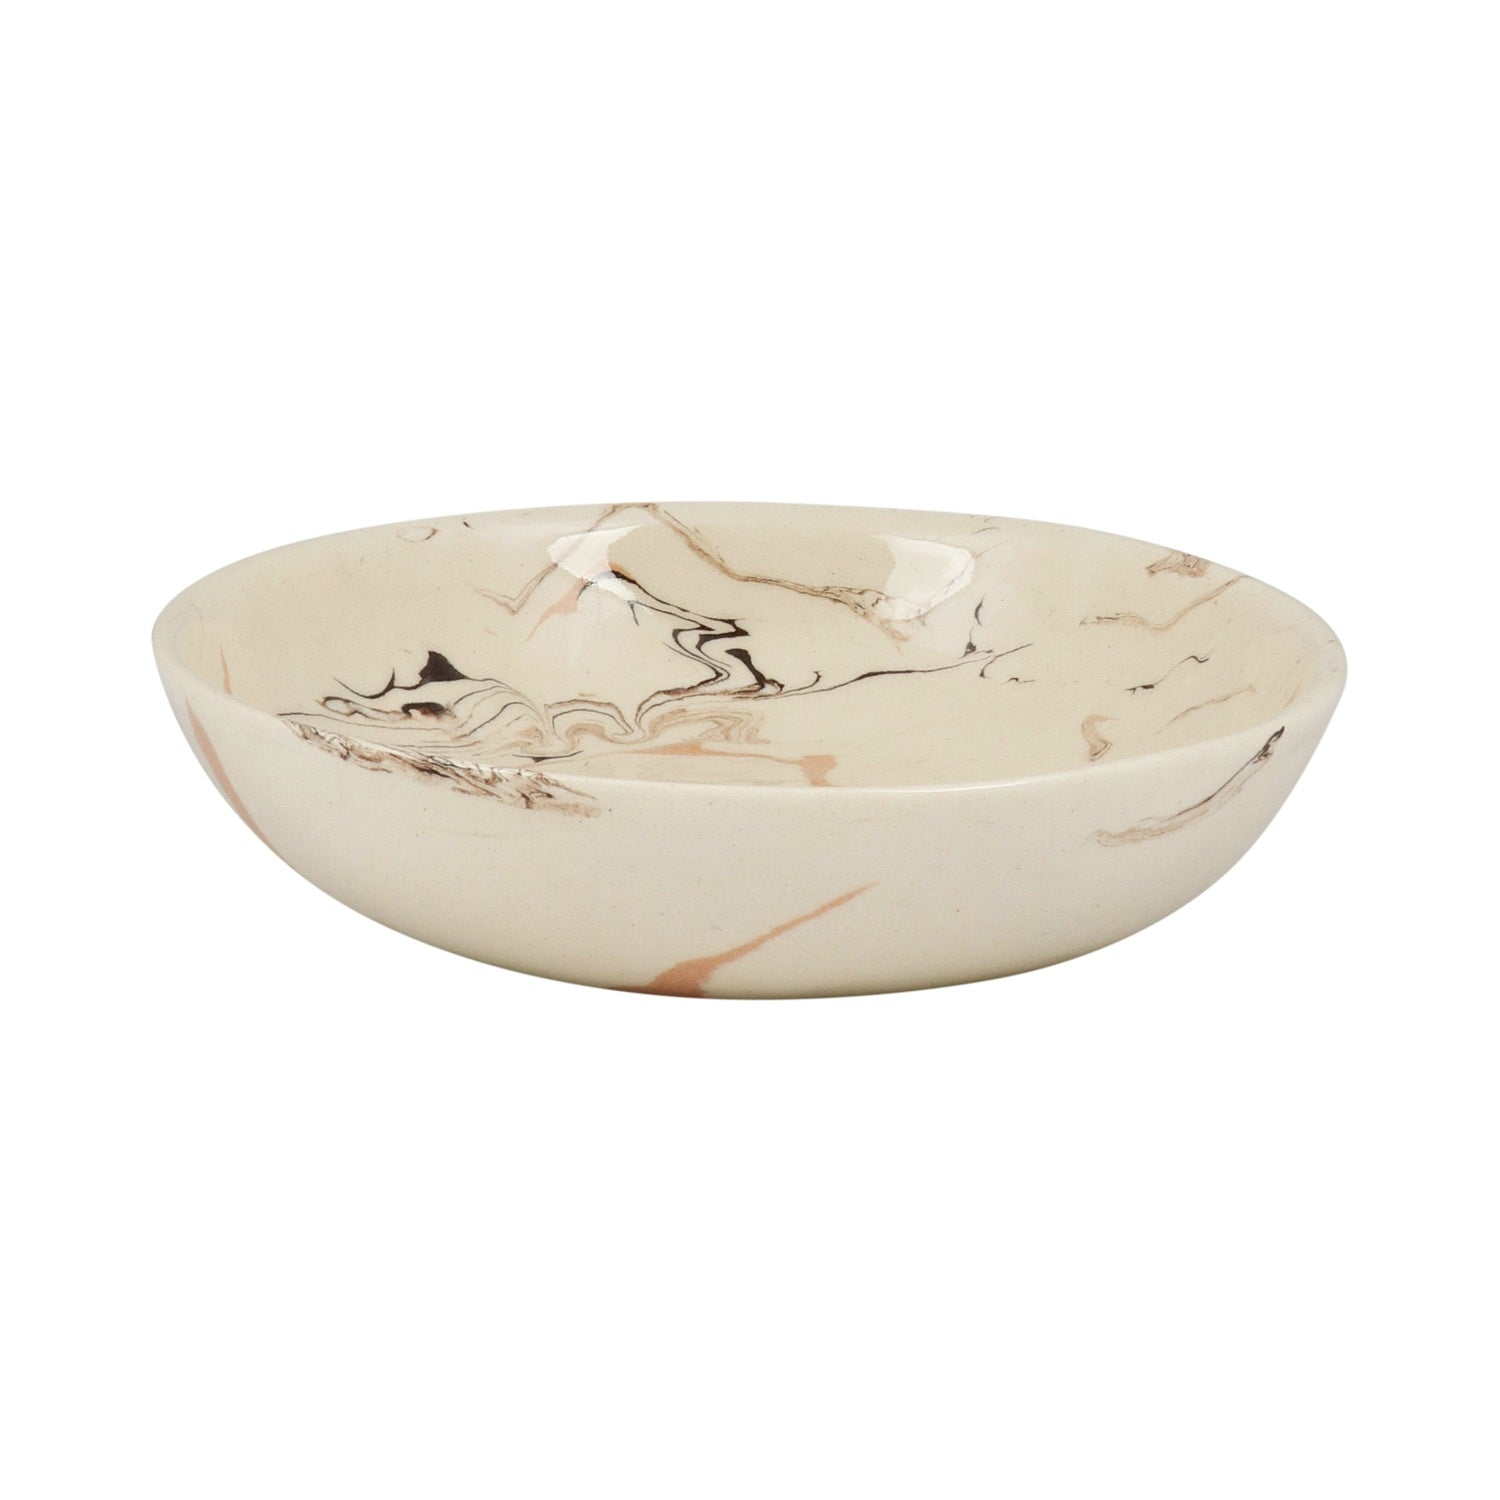 Cream Swirl Earthenware Bowl - 16cm